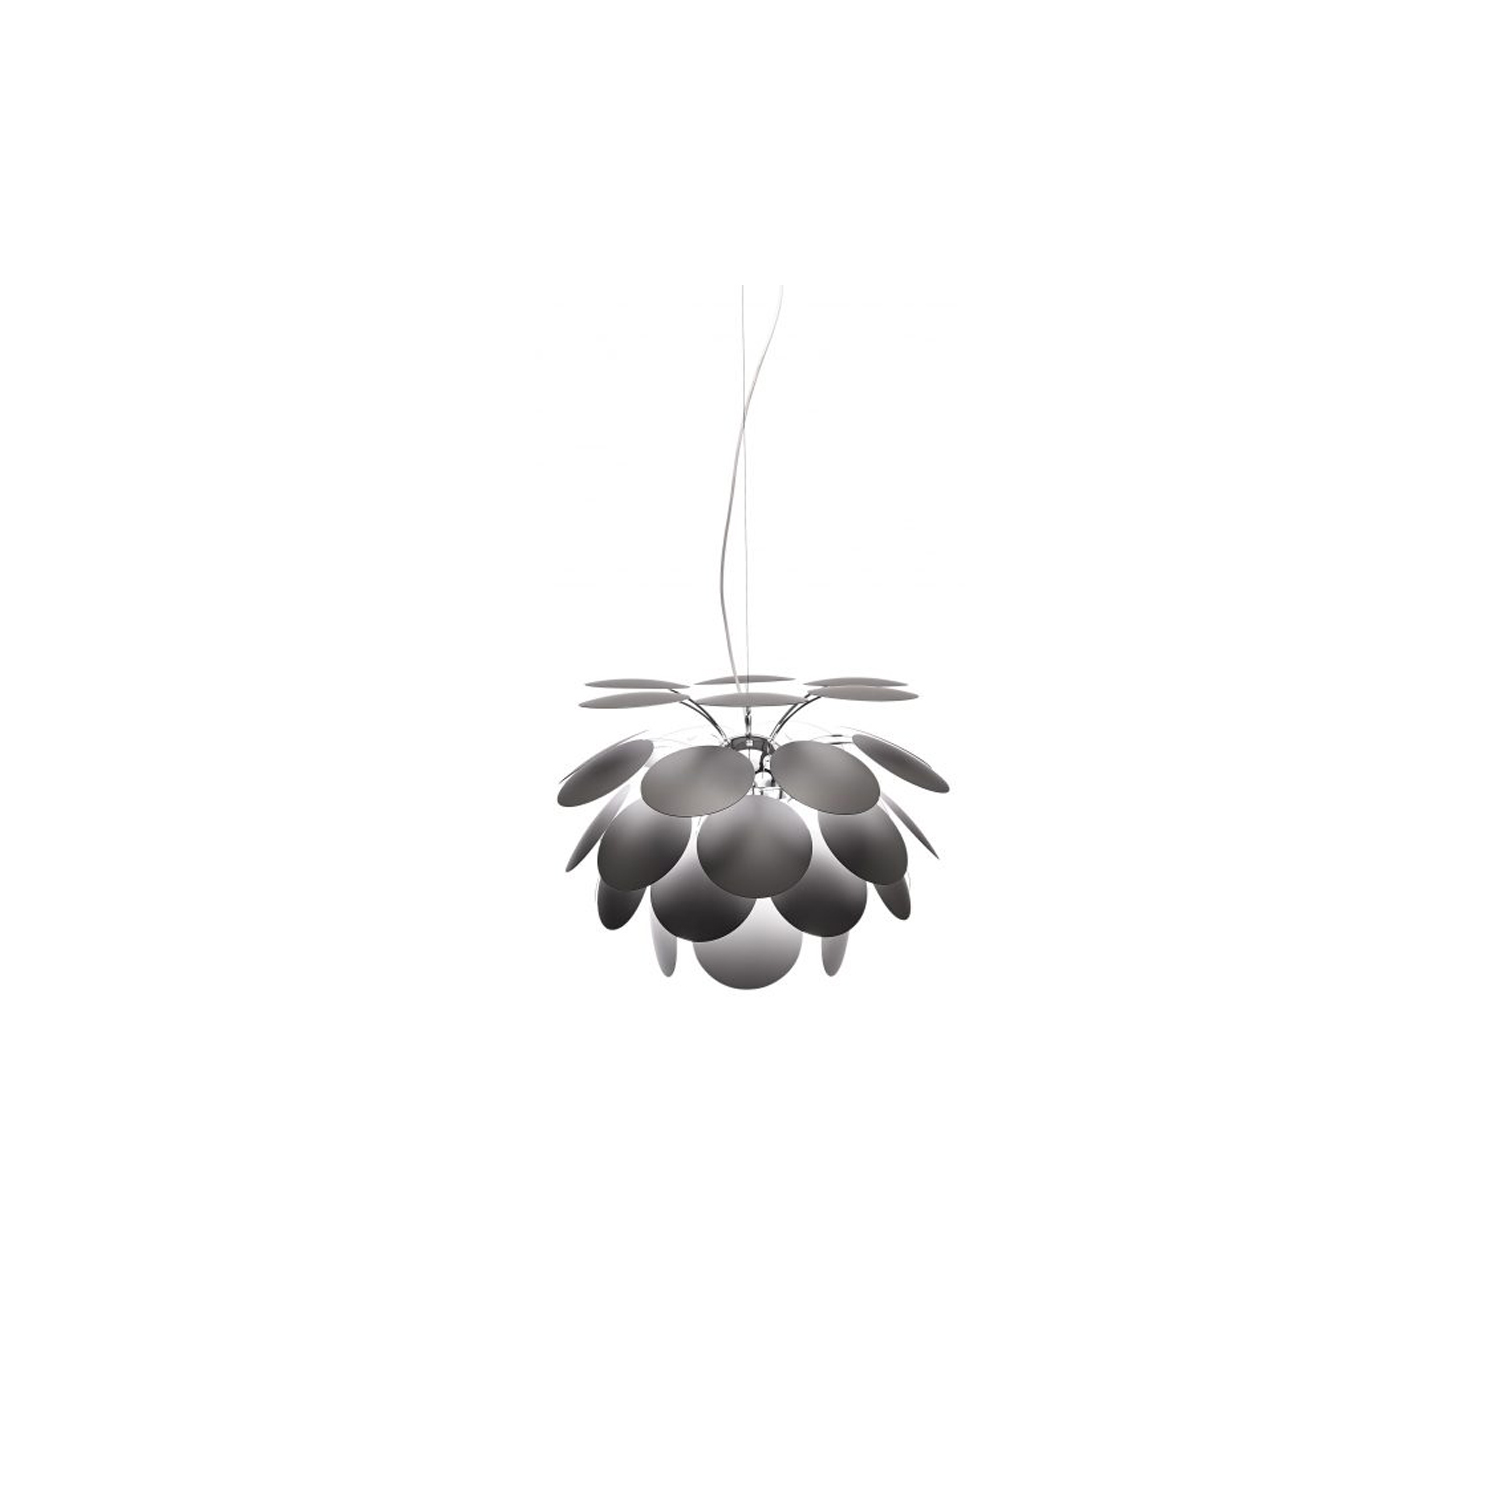 Discoco 68 Pendant Light - Discocó lamp provides direct downward illumination along with a dramatic play of lights and soft shadows.  Its detailed study of incident light and light that bounces off of both sides of the 35 disks provide the lamp with an appealing gradation of light nuances and depth. Further reflections dance off the chrome-covered sphere at the core, where the disks are anchored.  When the light is turned off, it retains its attractive presence, hinting at the expansion of energy that is fully expressed when it is turned on.  Two new tones, beige and grey, have been added to the existing color range, this time with a matte finish. A new 68 cm diameter is also available, making a total of five sizes to cover a host of applications. | Matter of Stuff